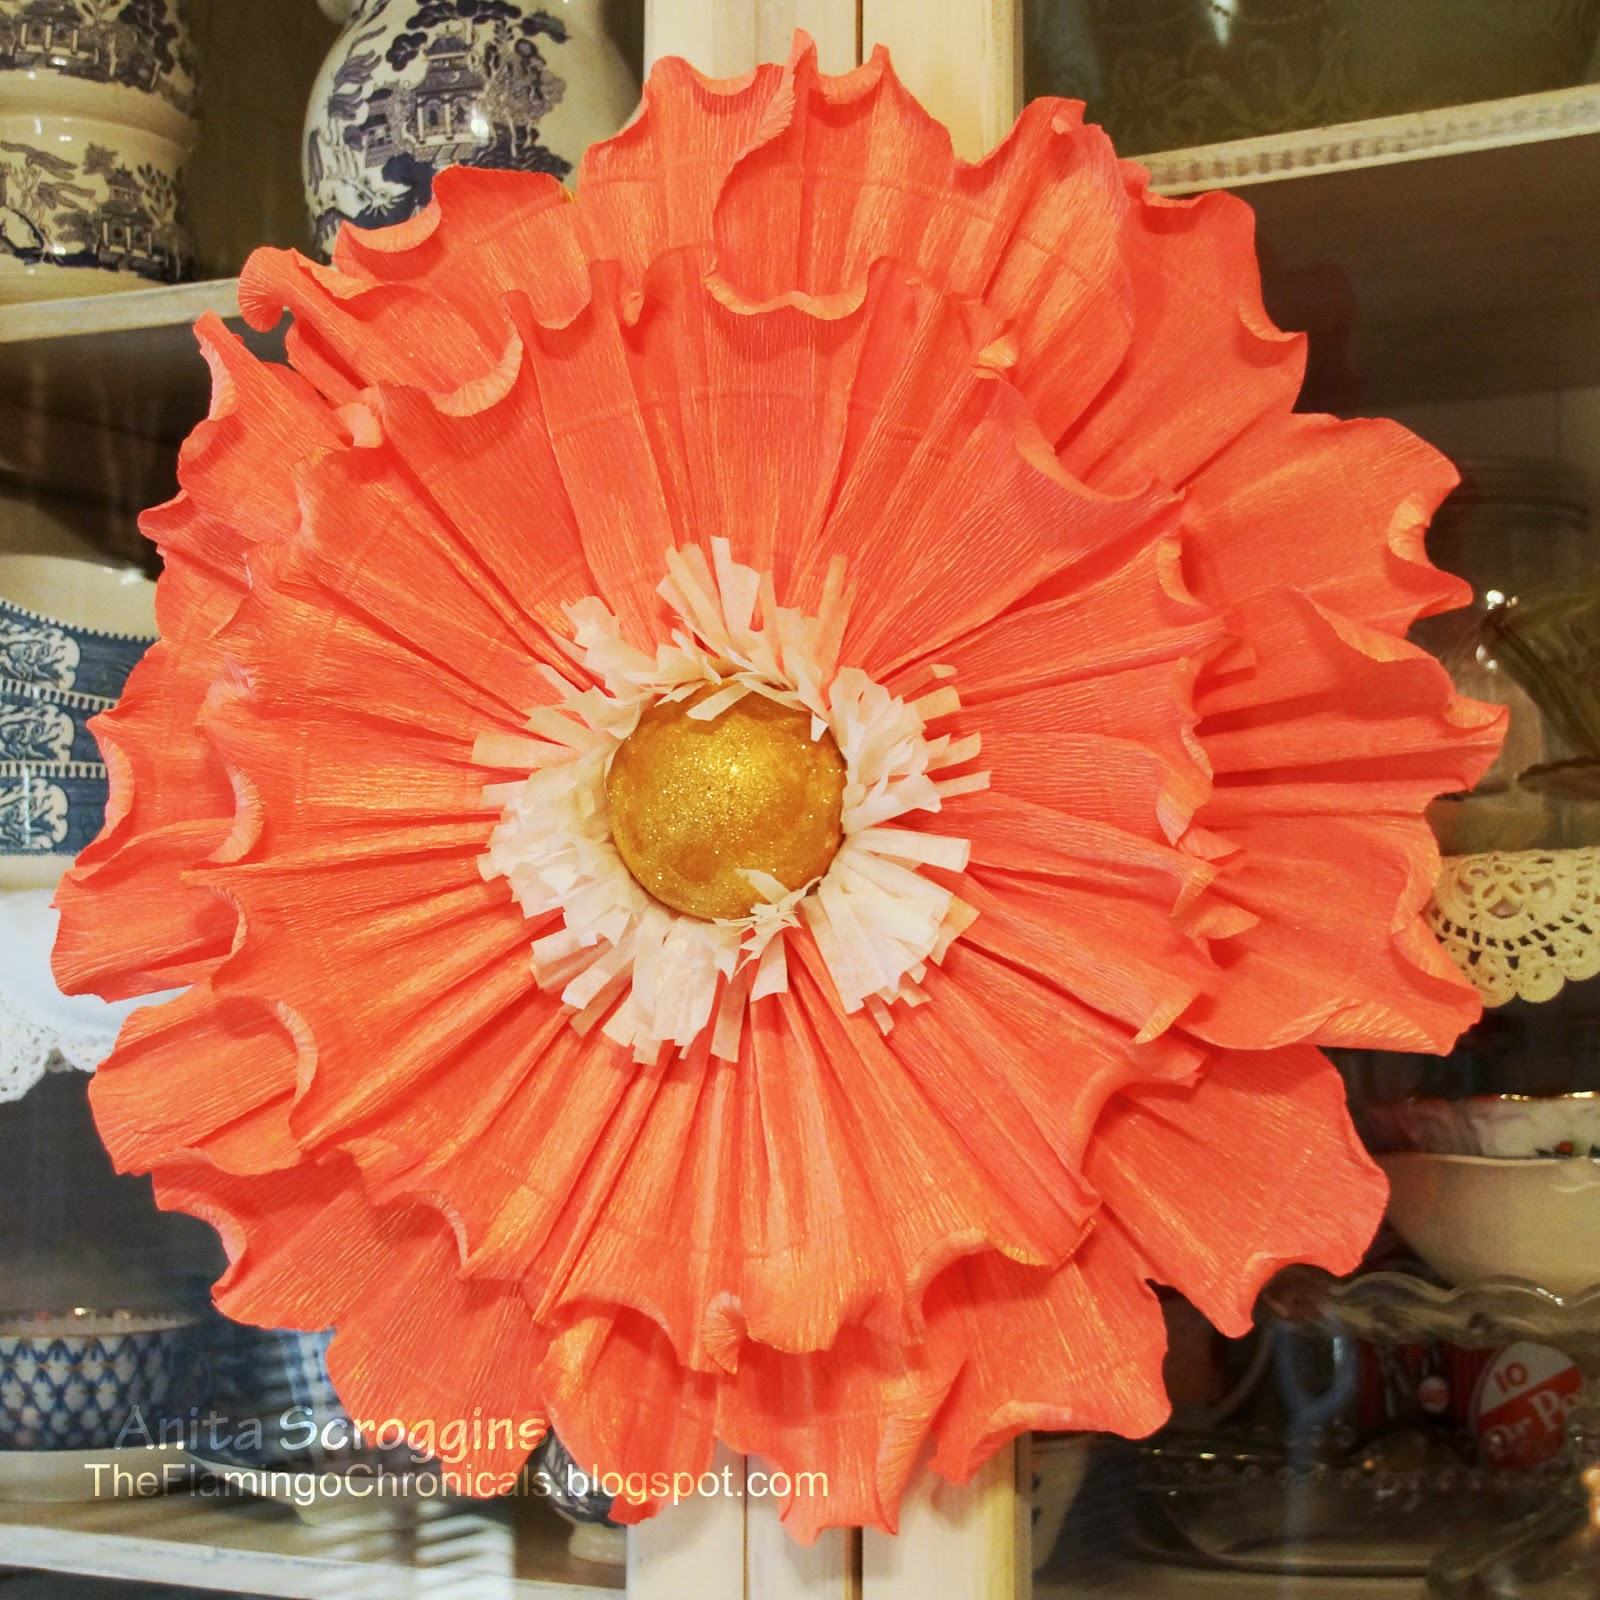 Giant Crepe Paper Flowers Diy Flower Decorations Smoothfoam